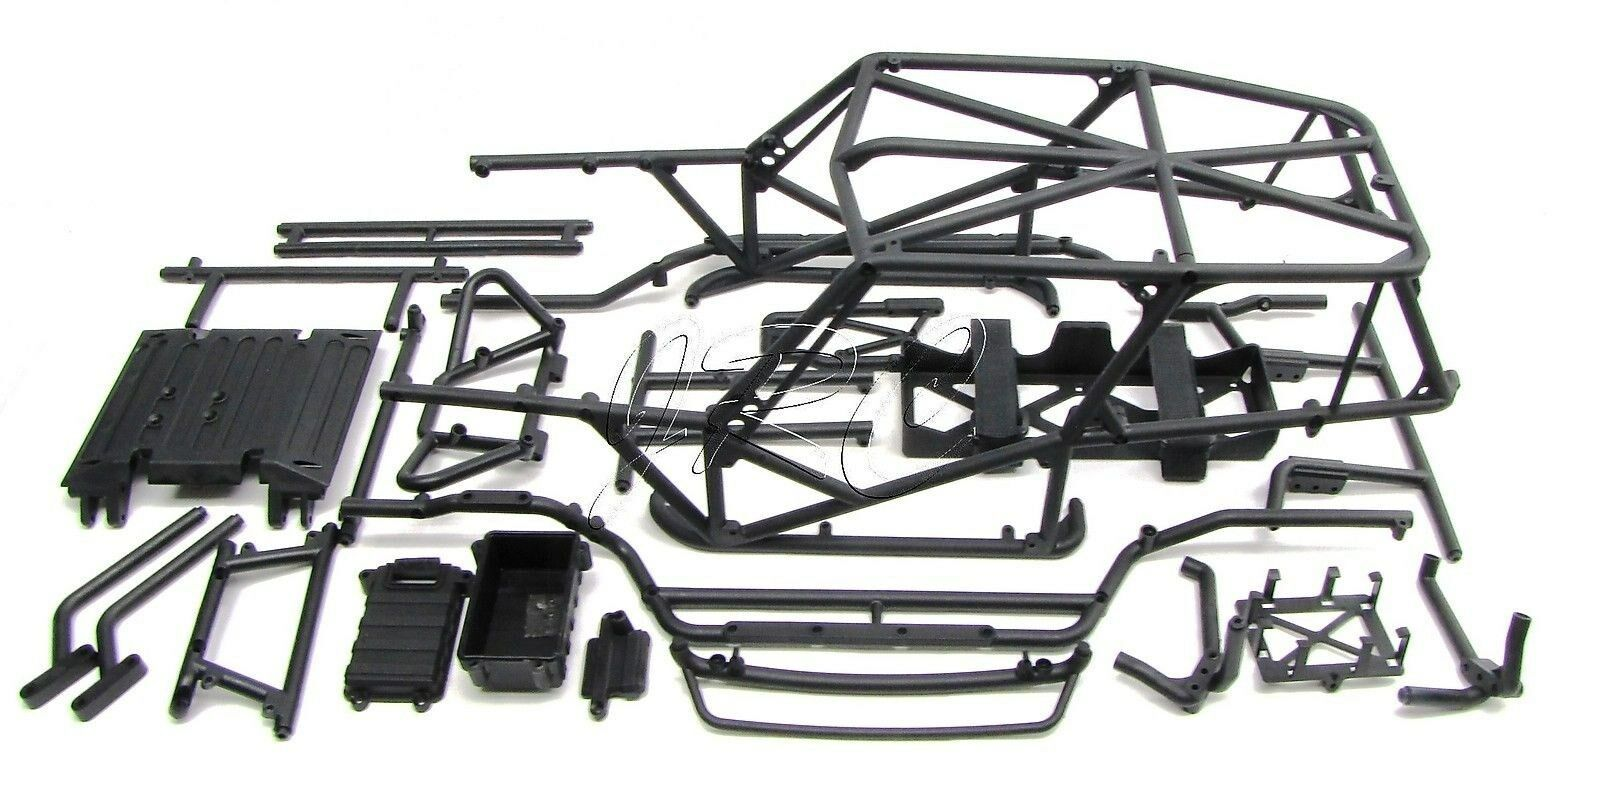 Axial Poison Spyder Wraith Main Frame & Plastic Tube Set Chassis ...